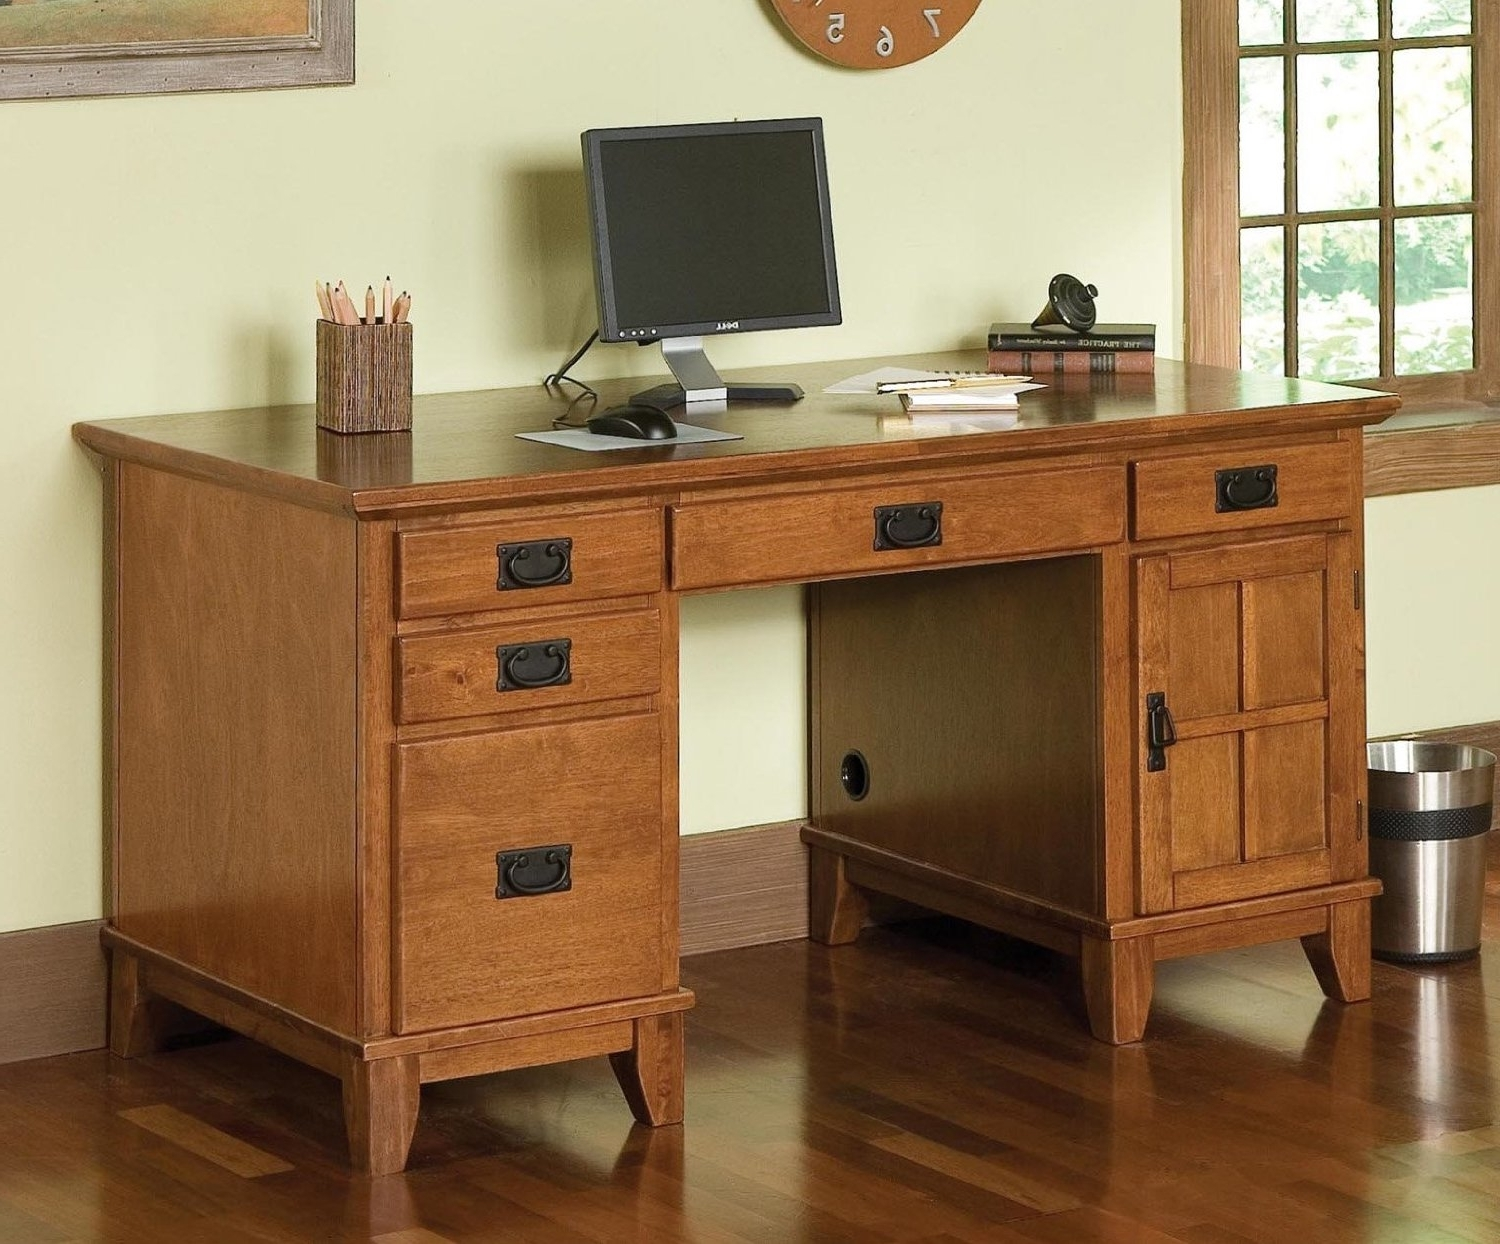 Computer Desks With Drawers Within Most Up To Date Solid Wood Computer Desk Design — Home Design Ideas : Build A (View 9 of 20)